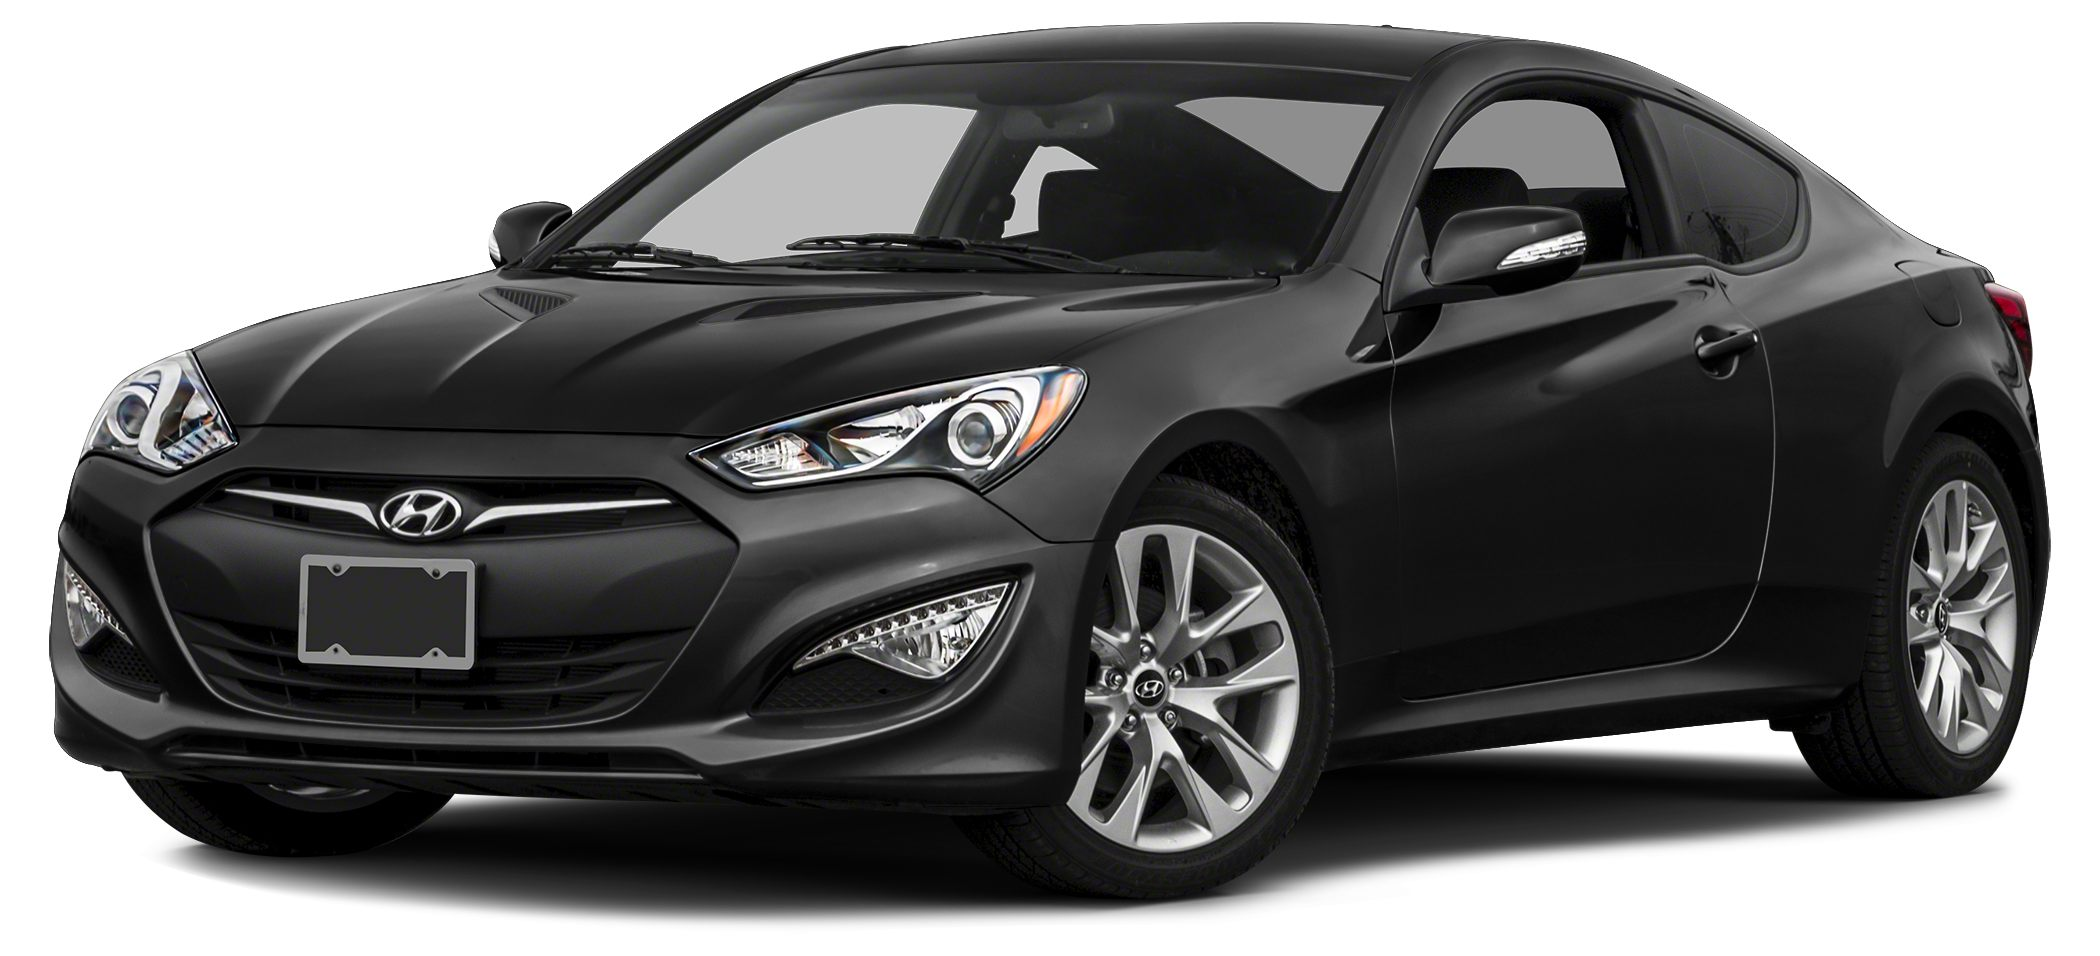 2016 Hyundai Genesis Coupe 38 R-Spec Safety comes first with anti-lock brakes traction control